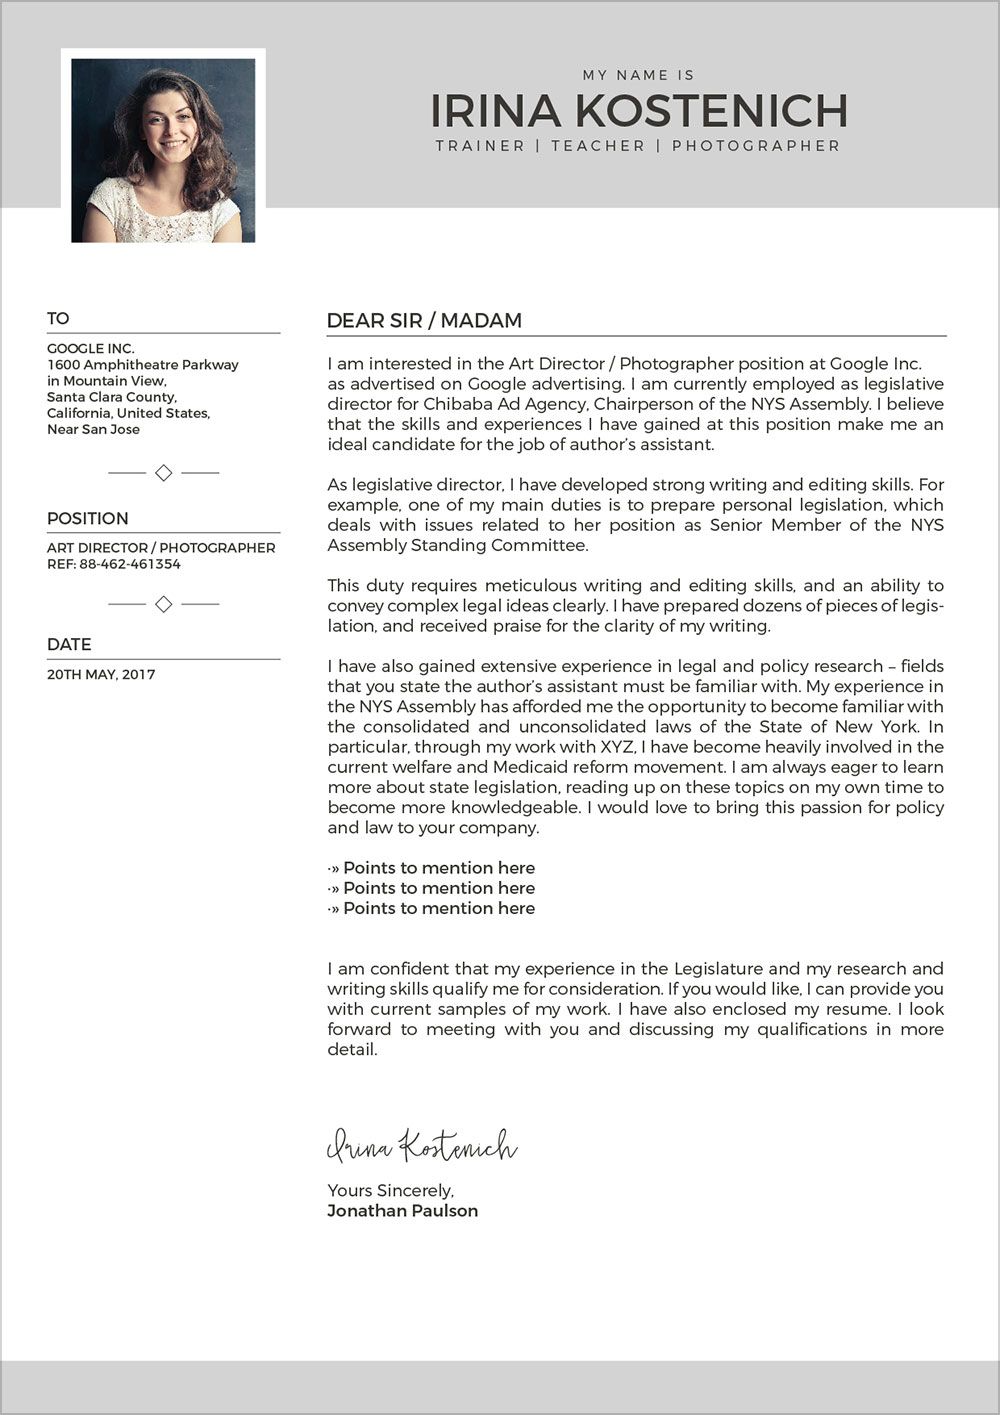 Free Modern CV Template Cover Letter  Portfolio Design Template in Vector Ai